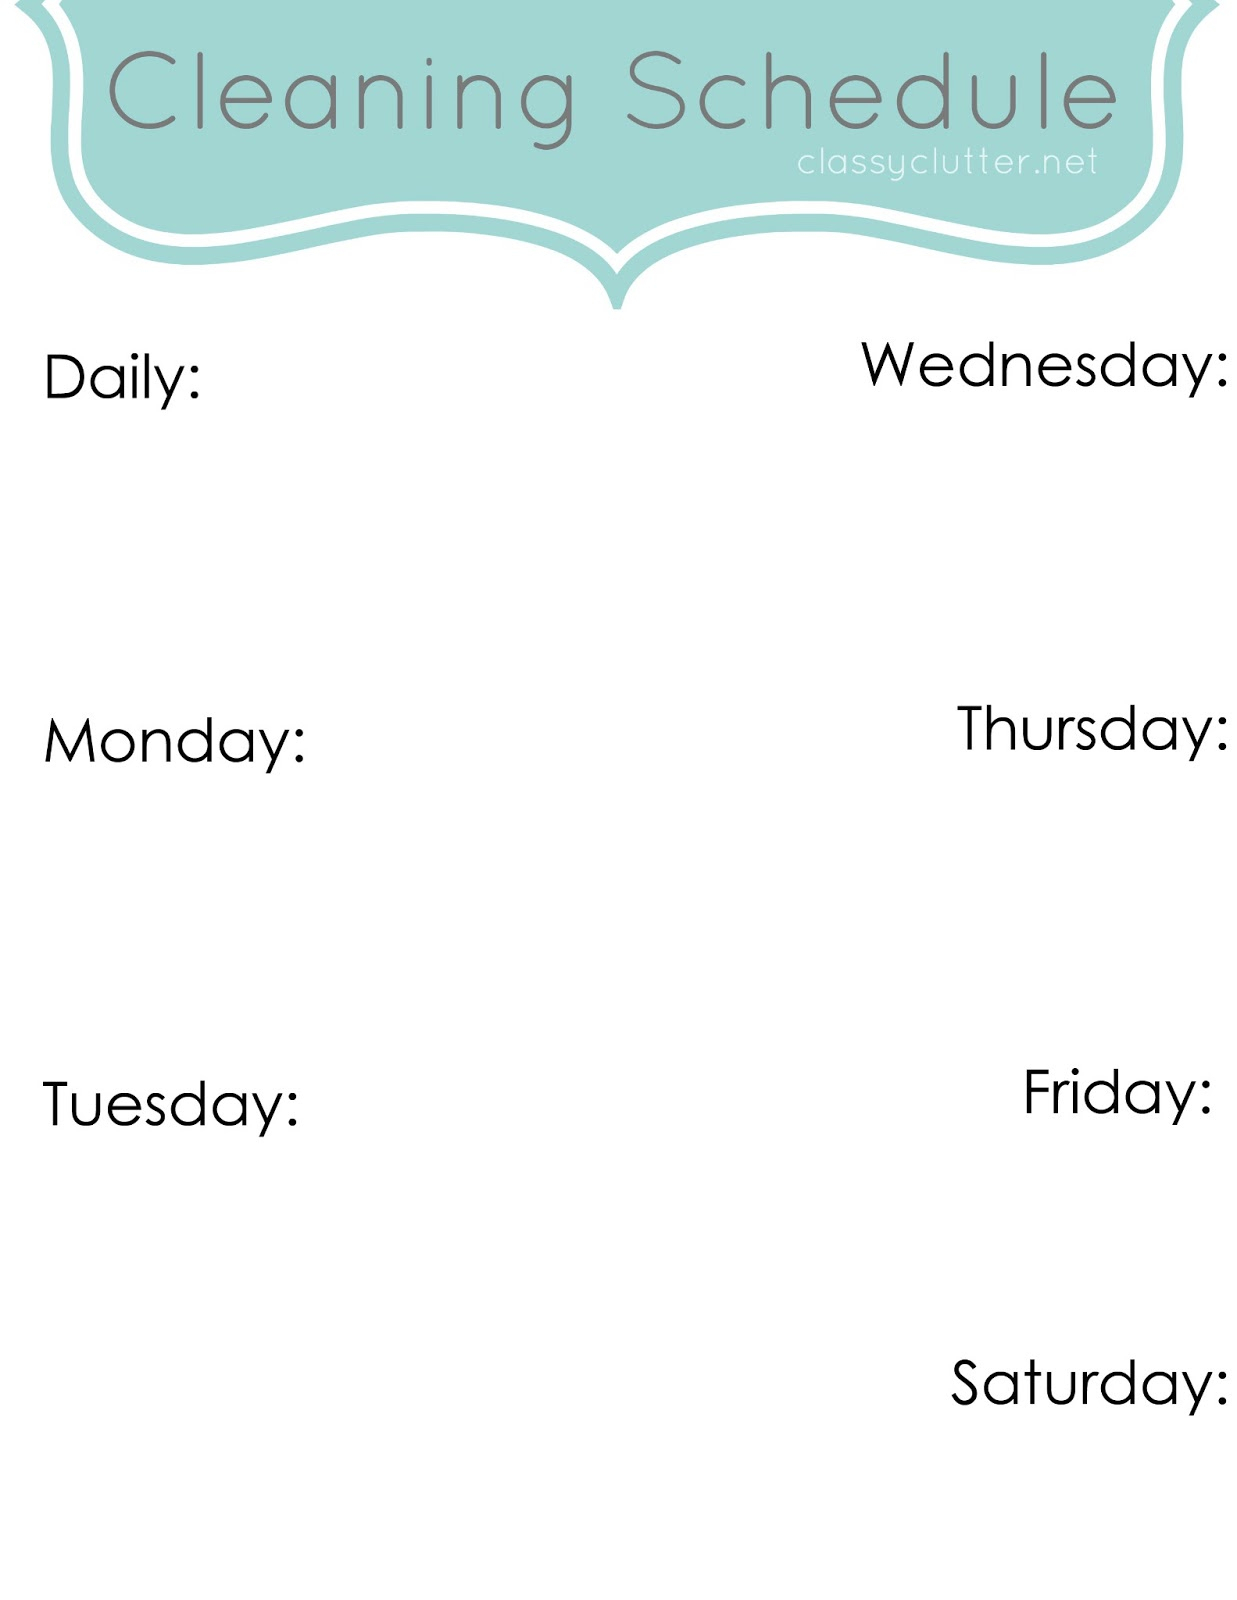 Weekly Cleaning Schedule: Improve Your Cleaning Habits